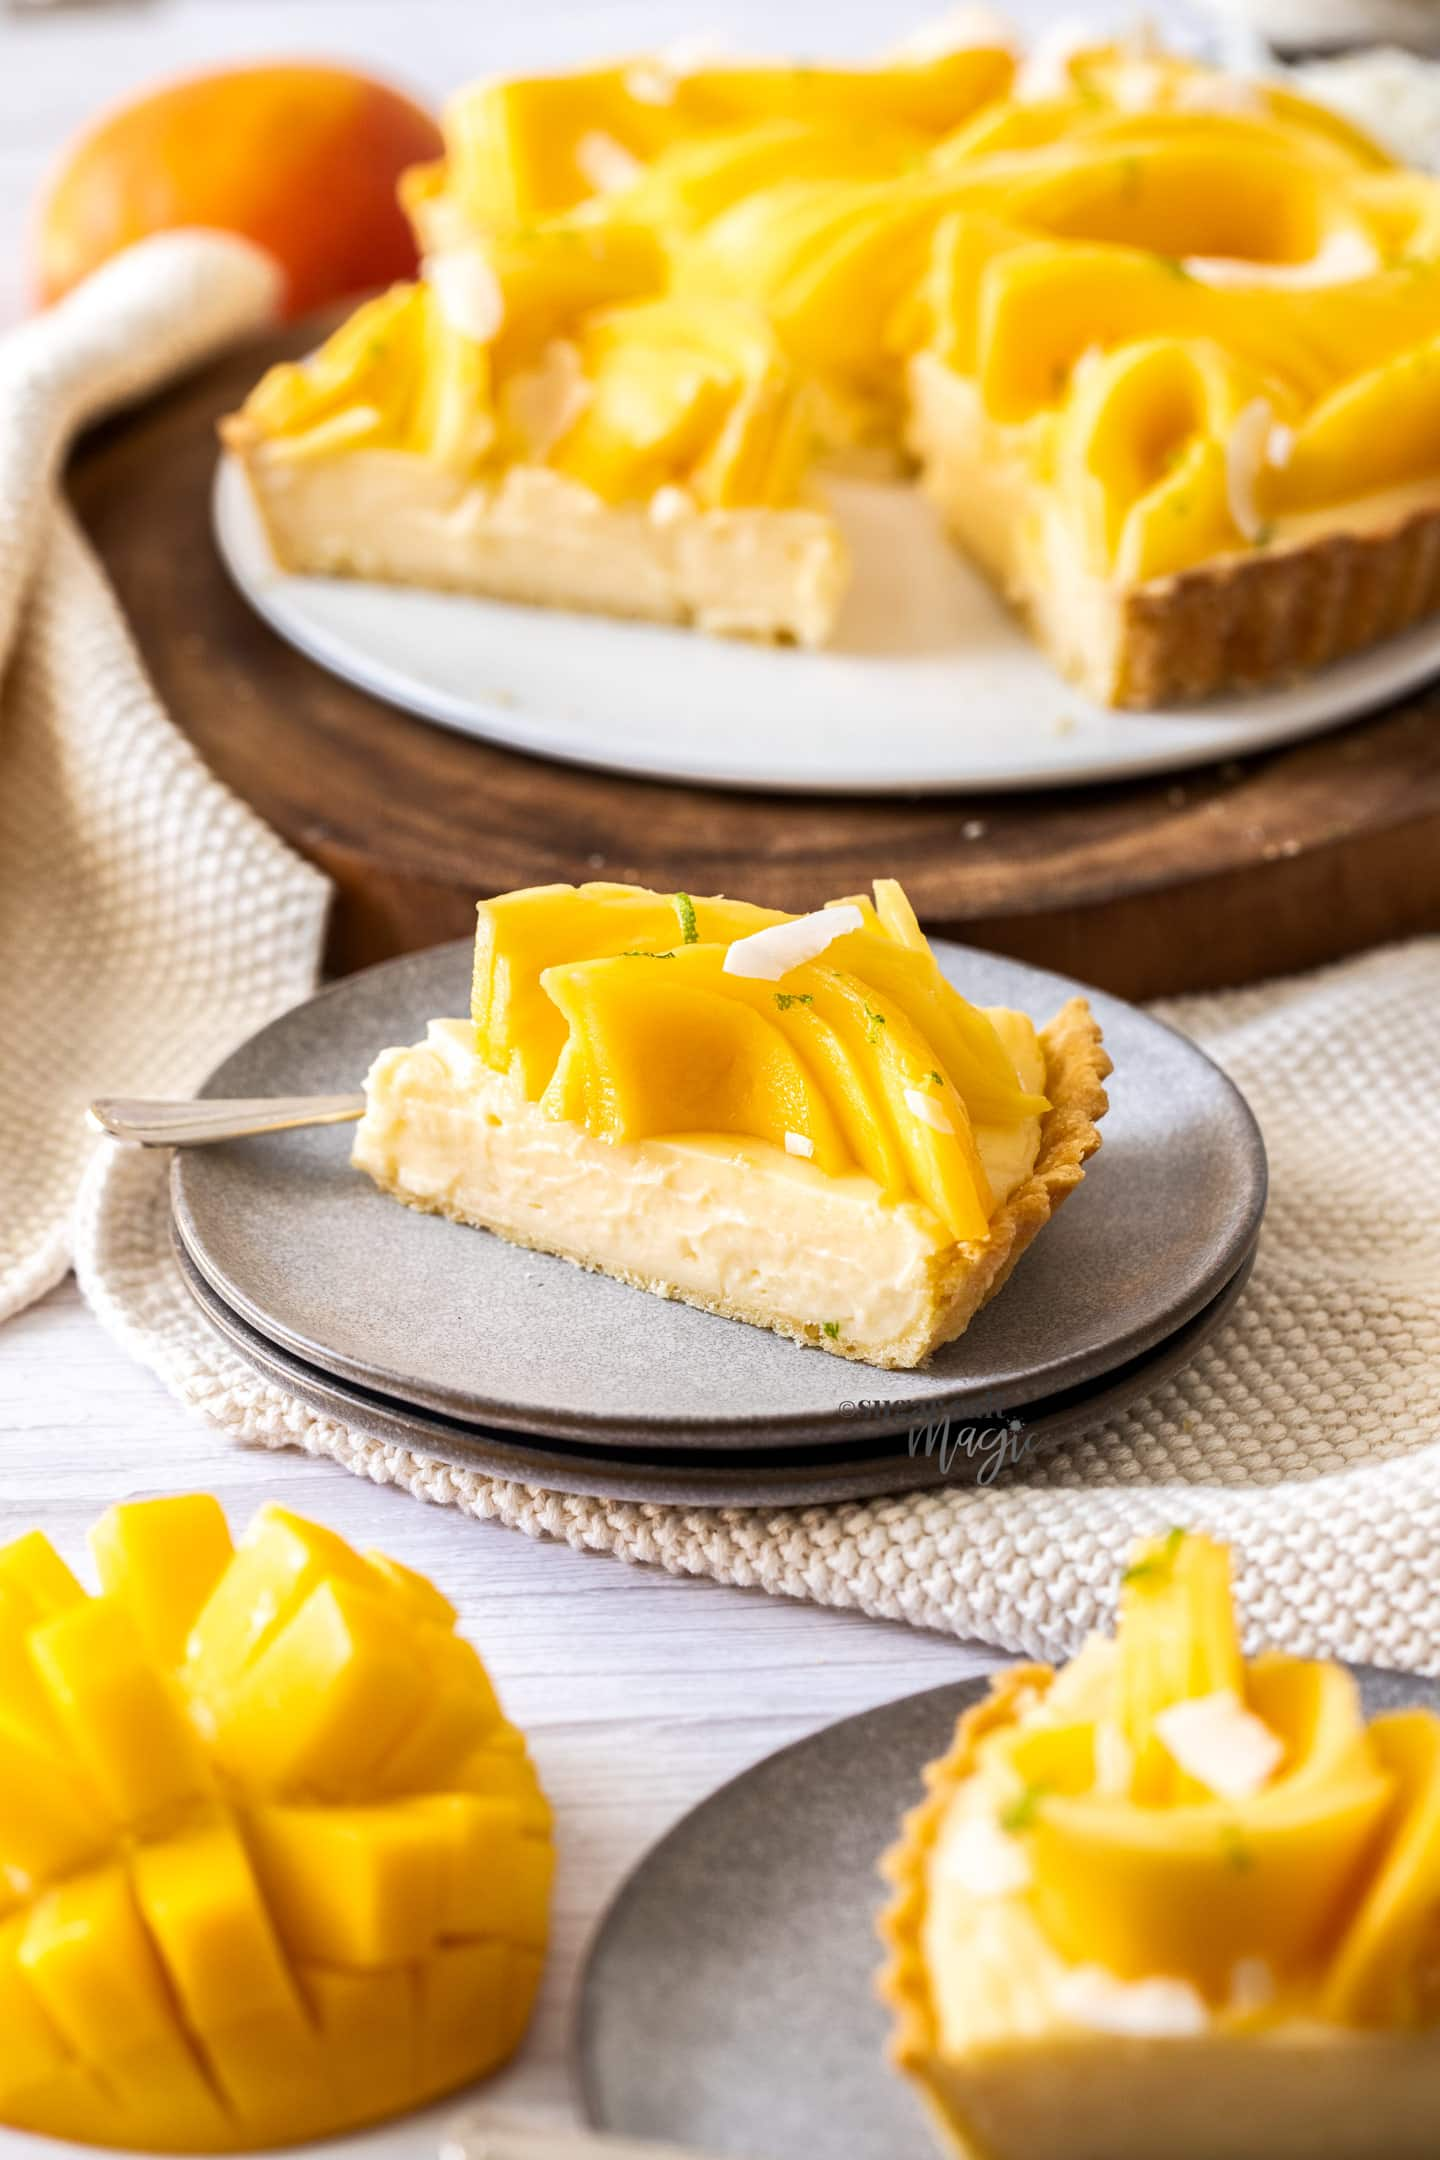 A slice of mango tart on a small grey plate